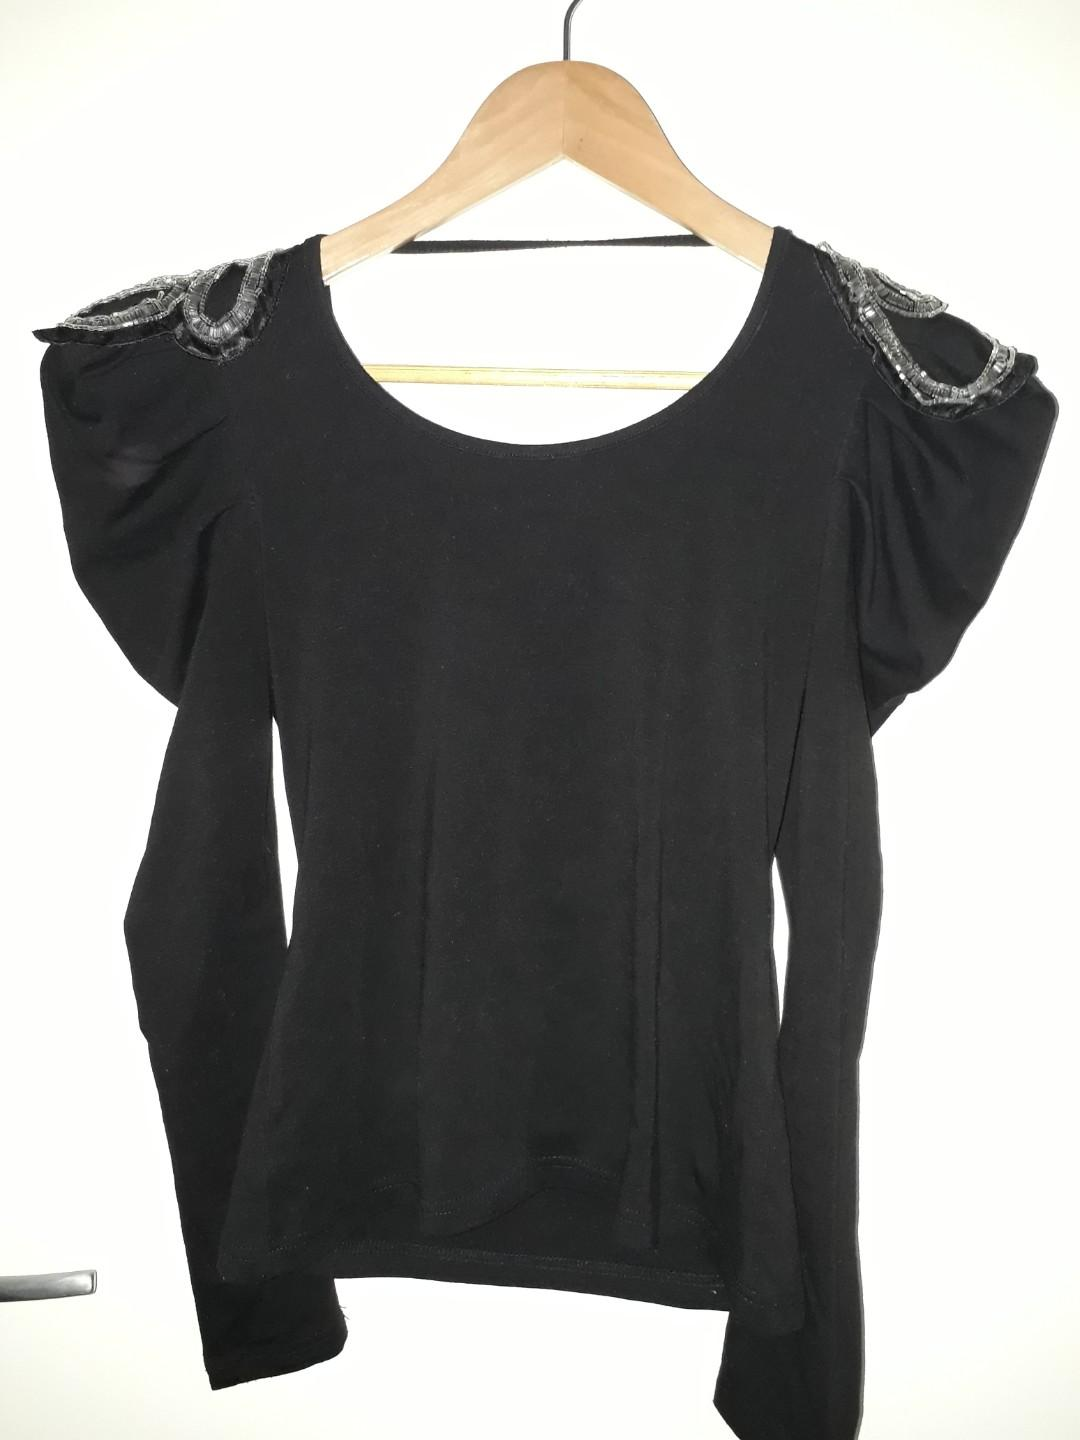 Black long sleeve top with lace back and embellished padded shoulders